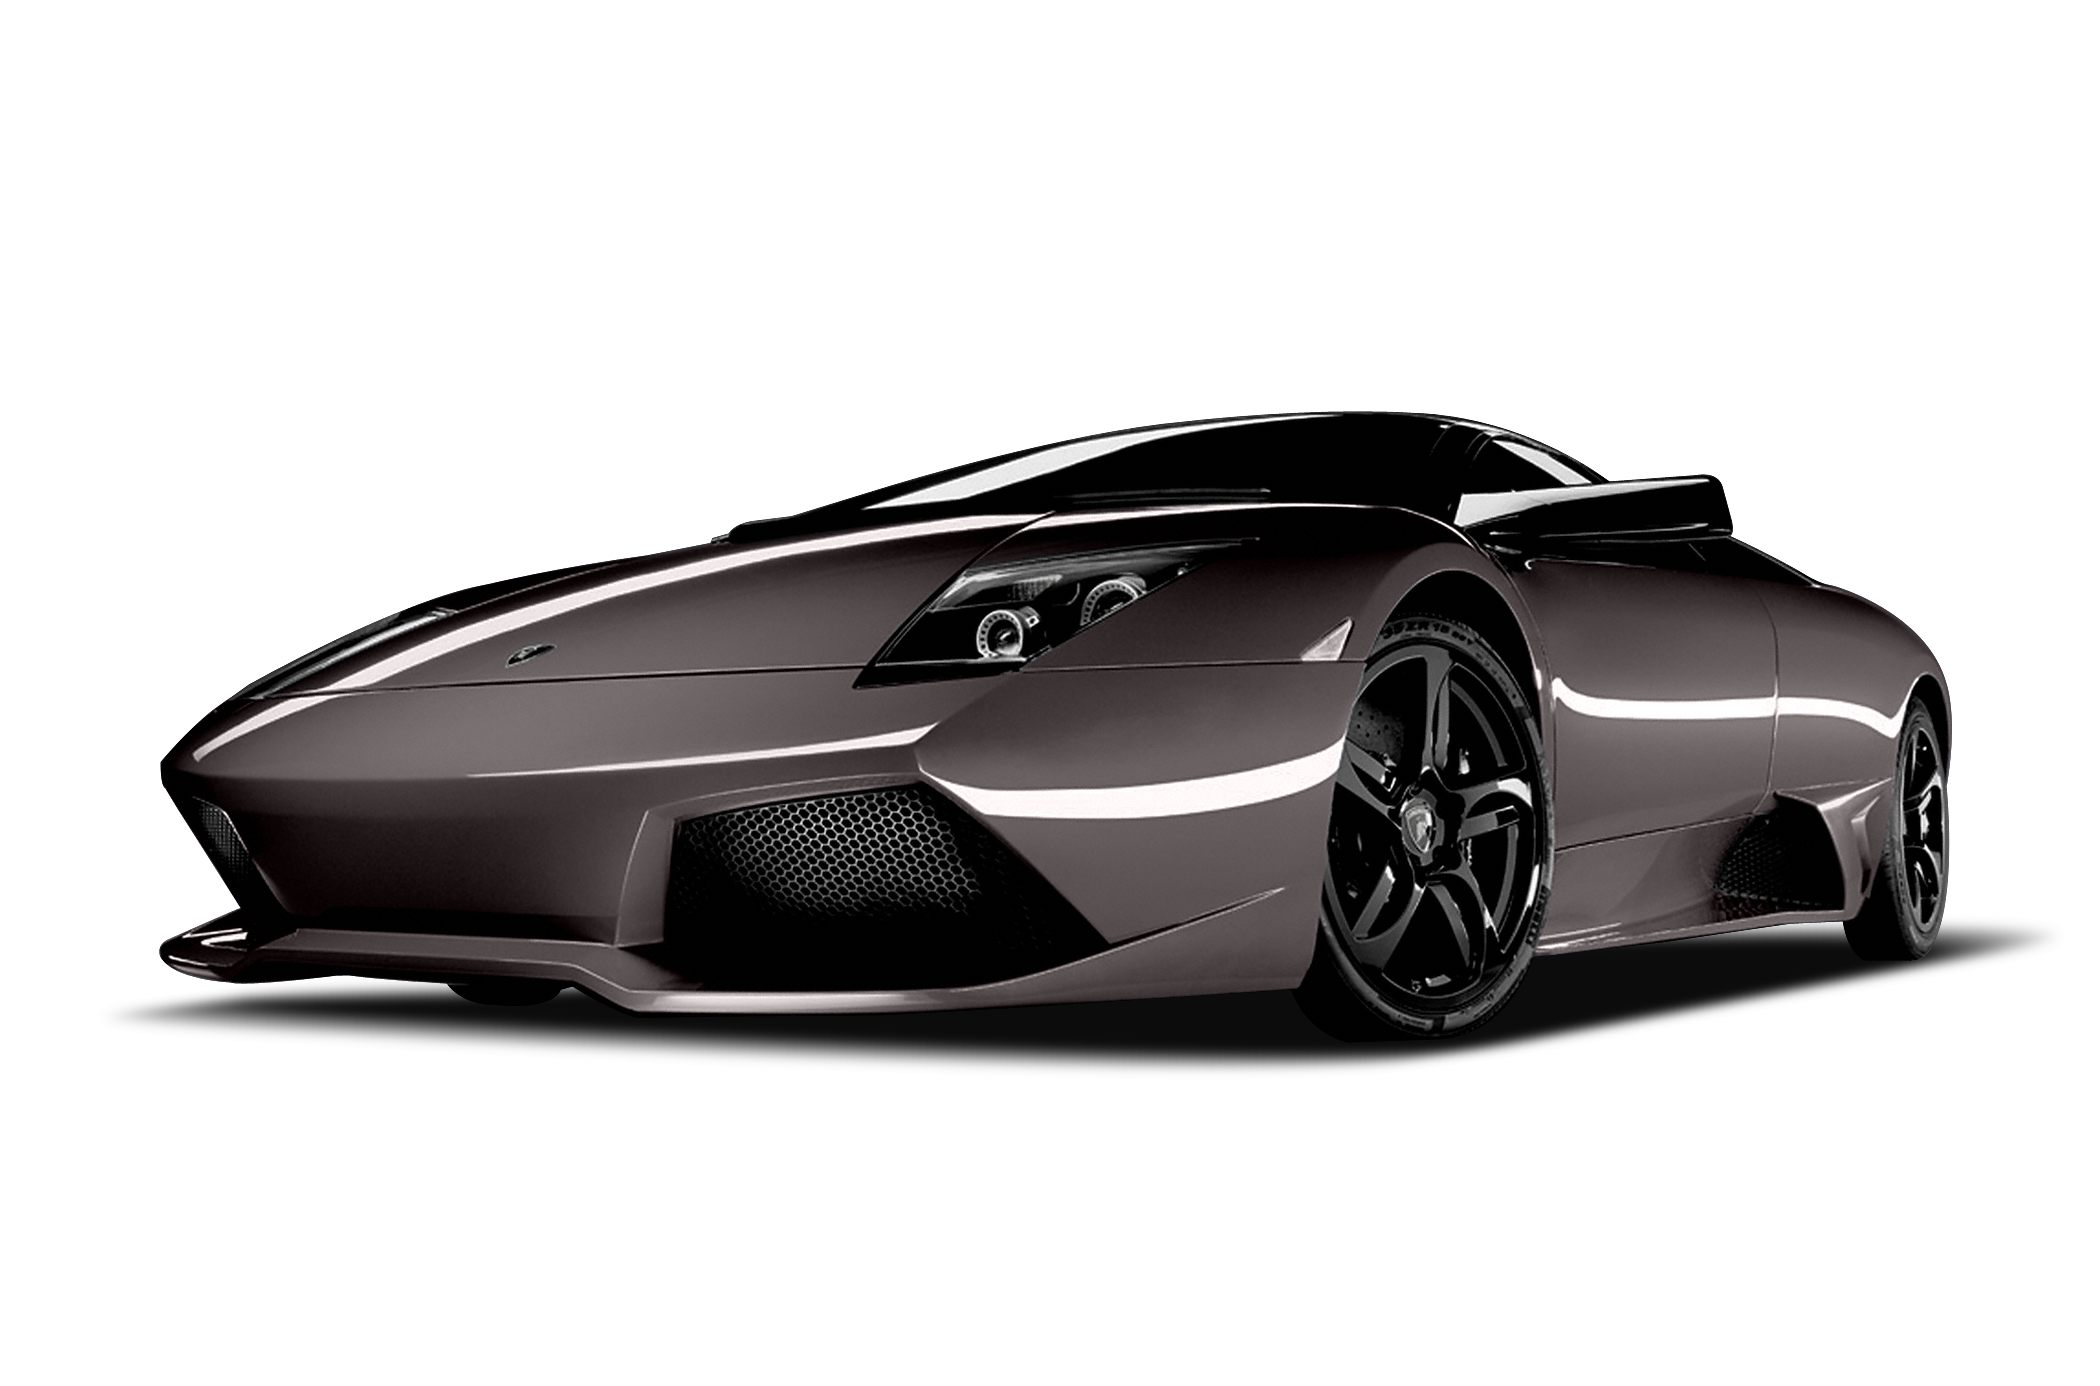 2009 Lamborghini Murcielago